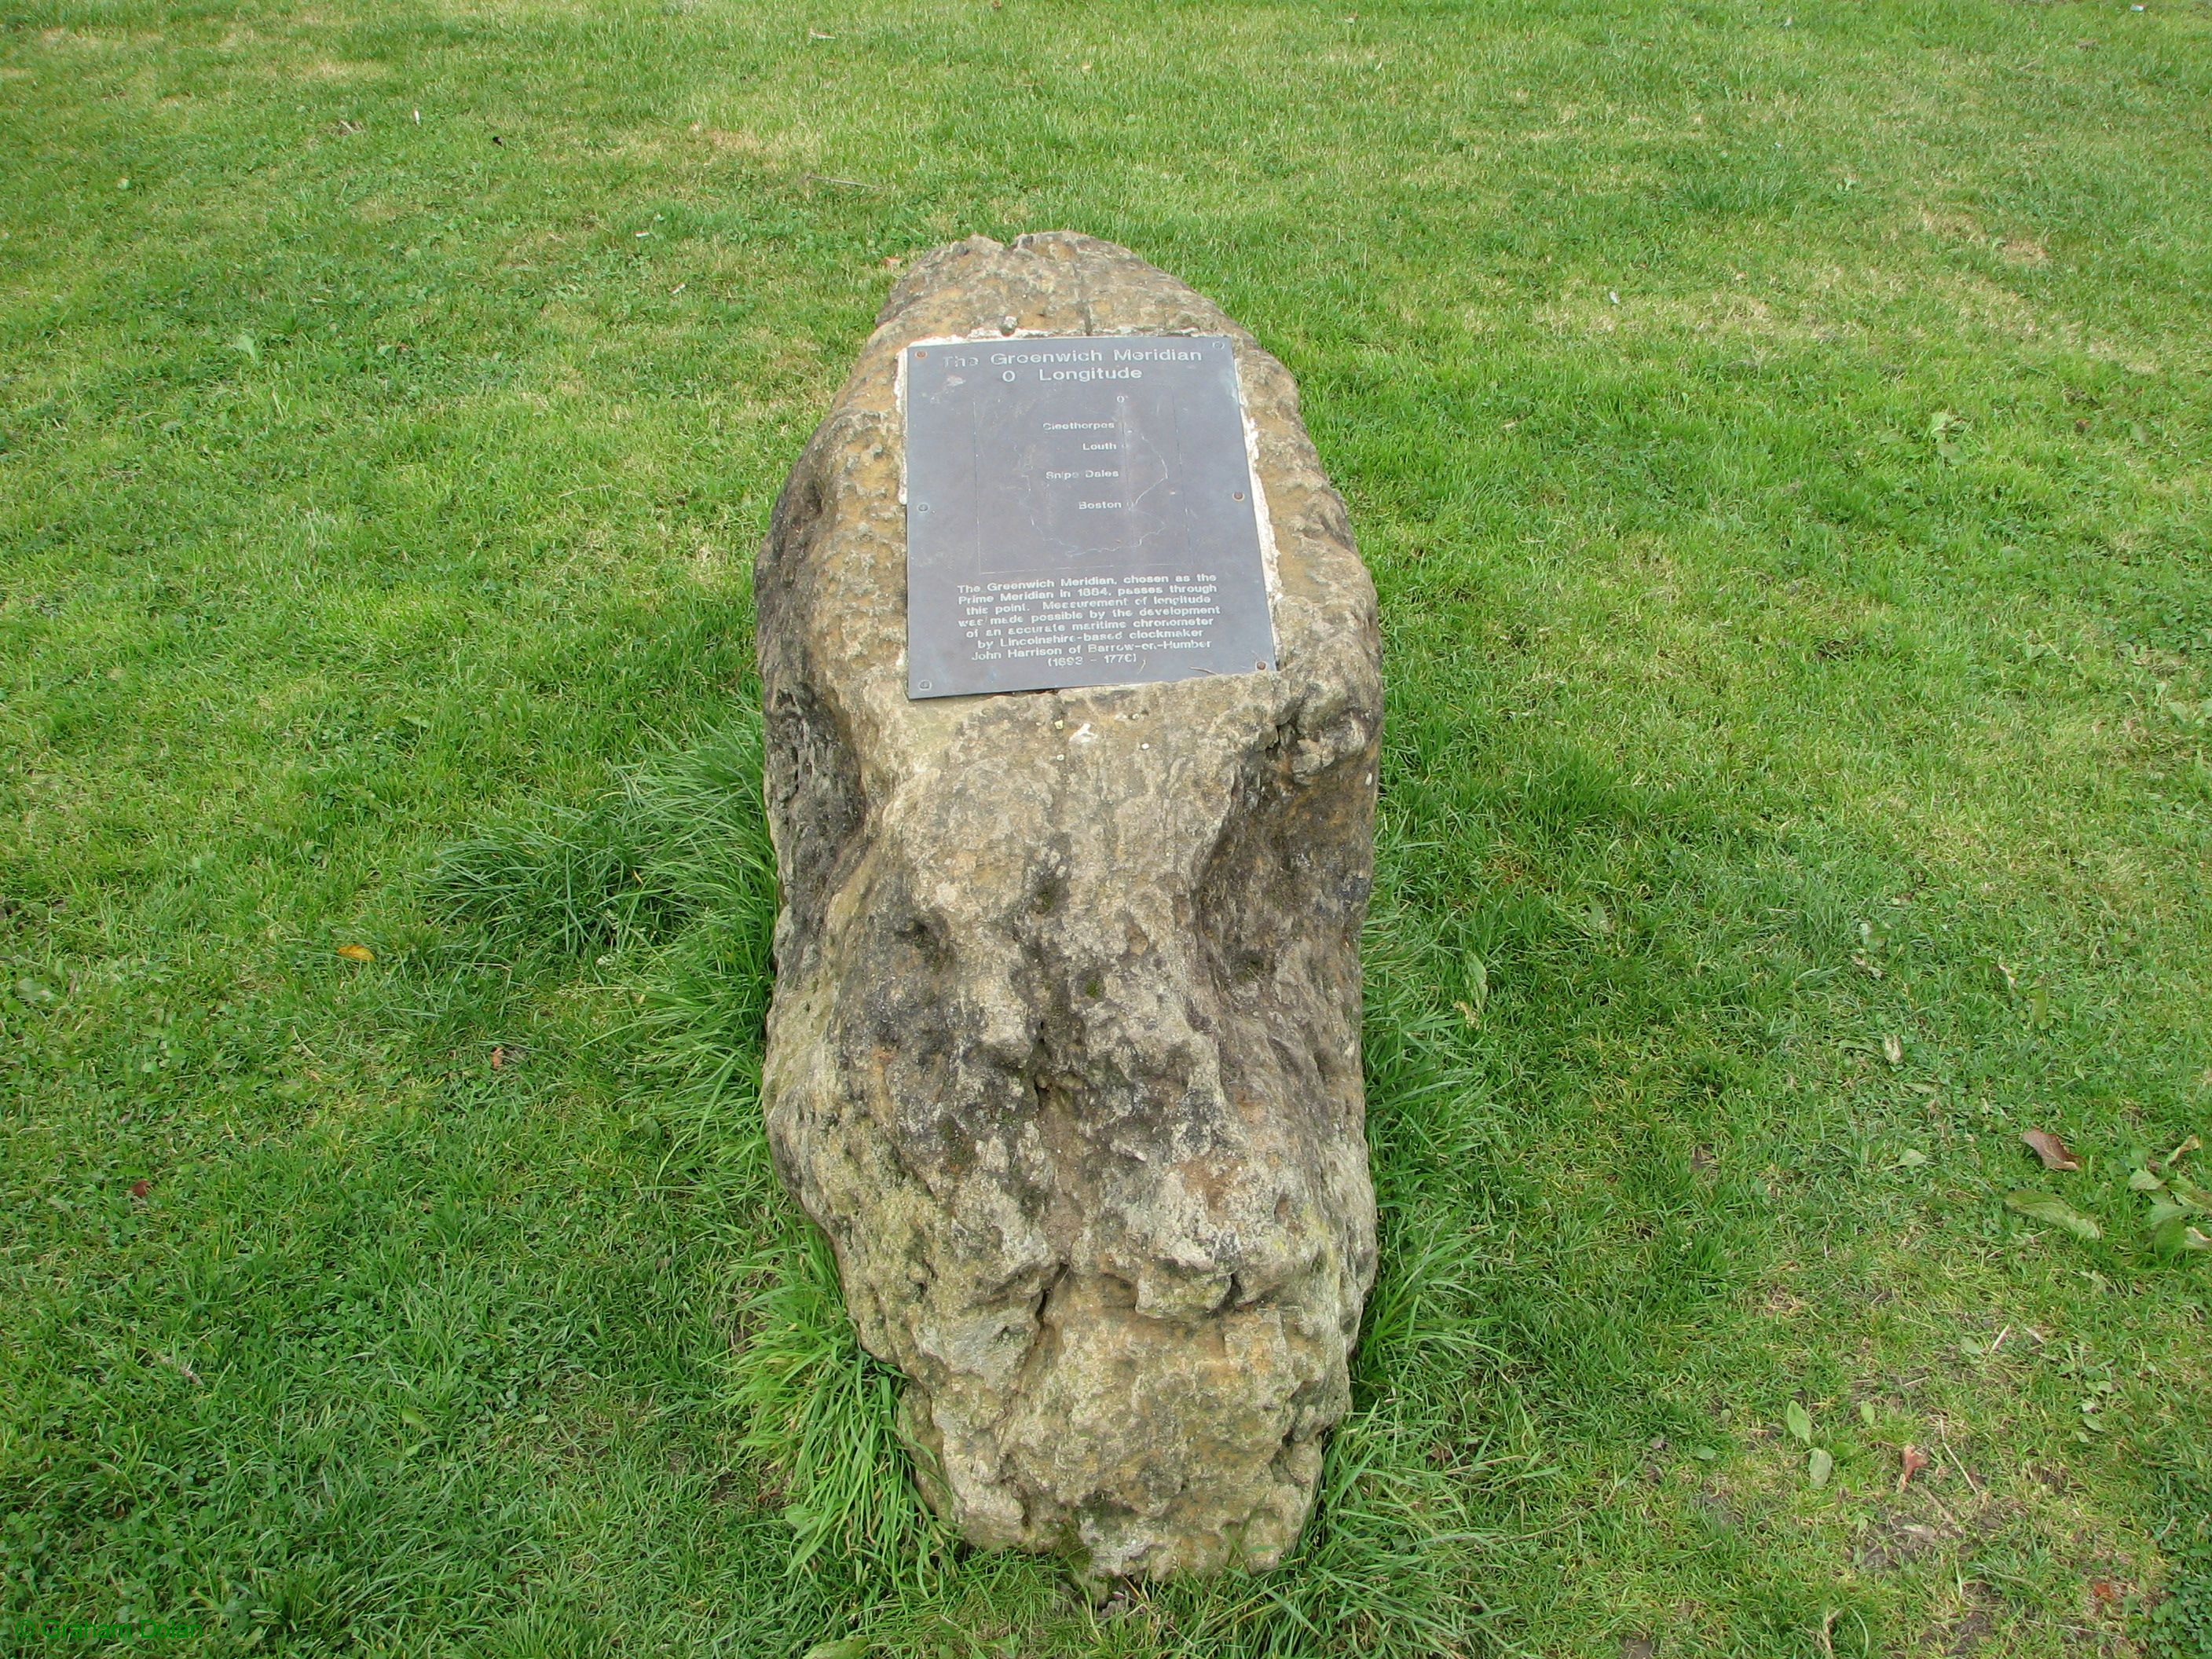 Greenwich Meridian Marker; England; Lincolnshire; Winceby